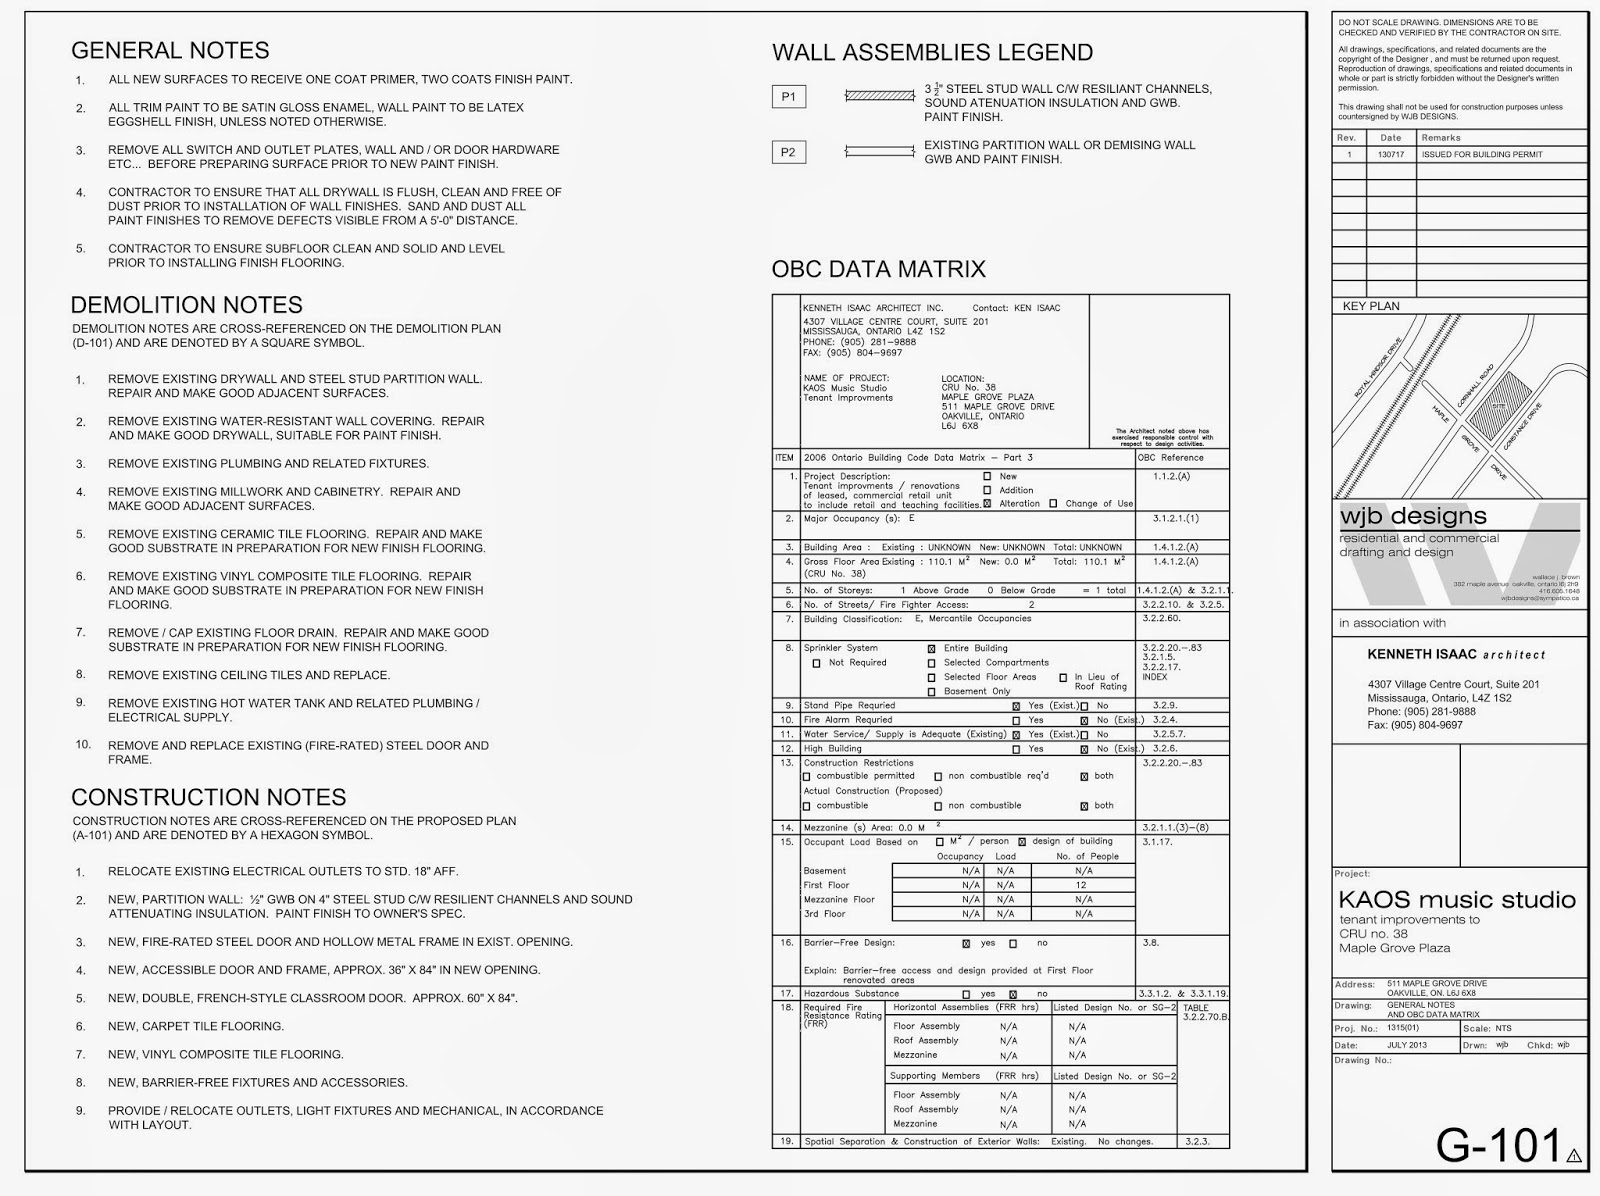 residential electrical plan general notes electrical plan general notes #1